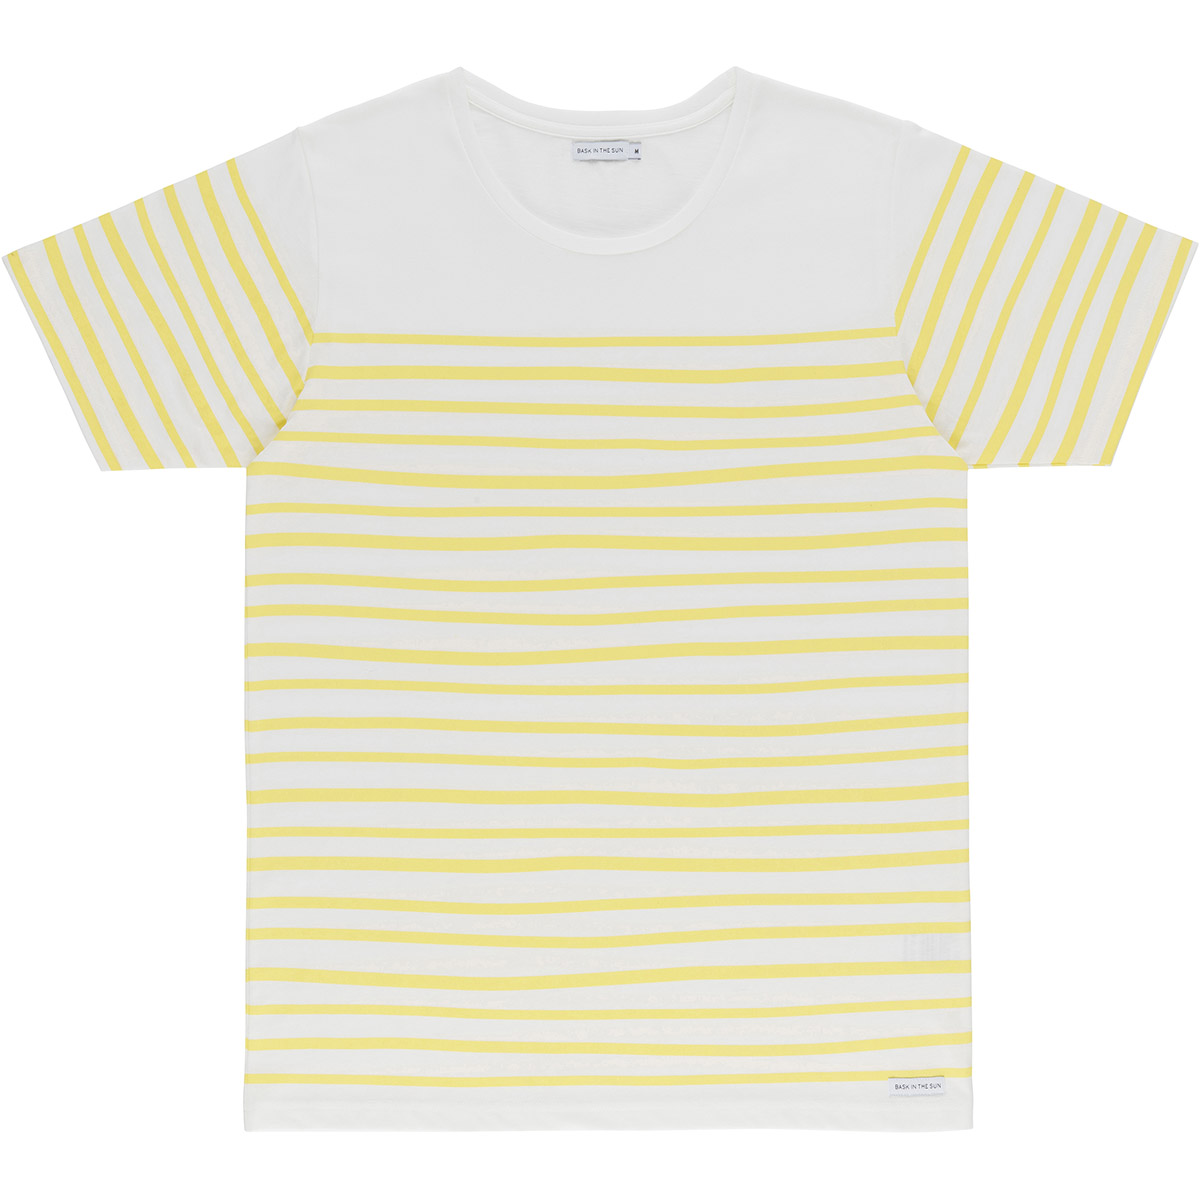 Bask in the Sun - T-shirt en coton bio yellow esperanza